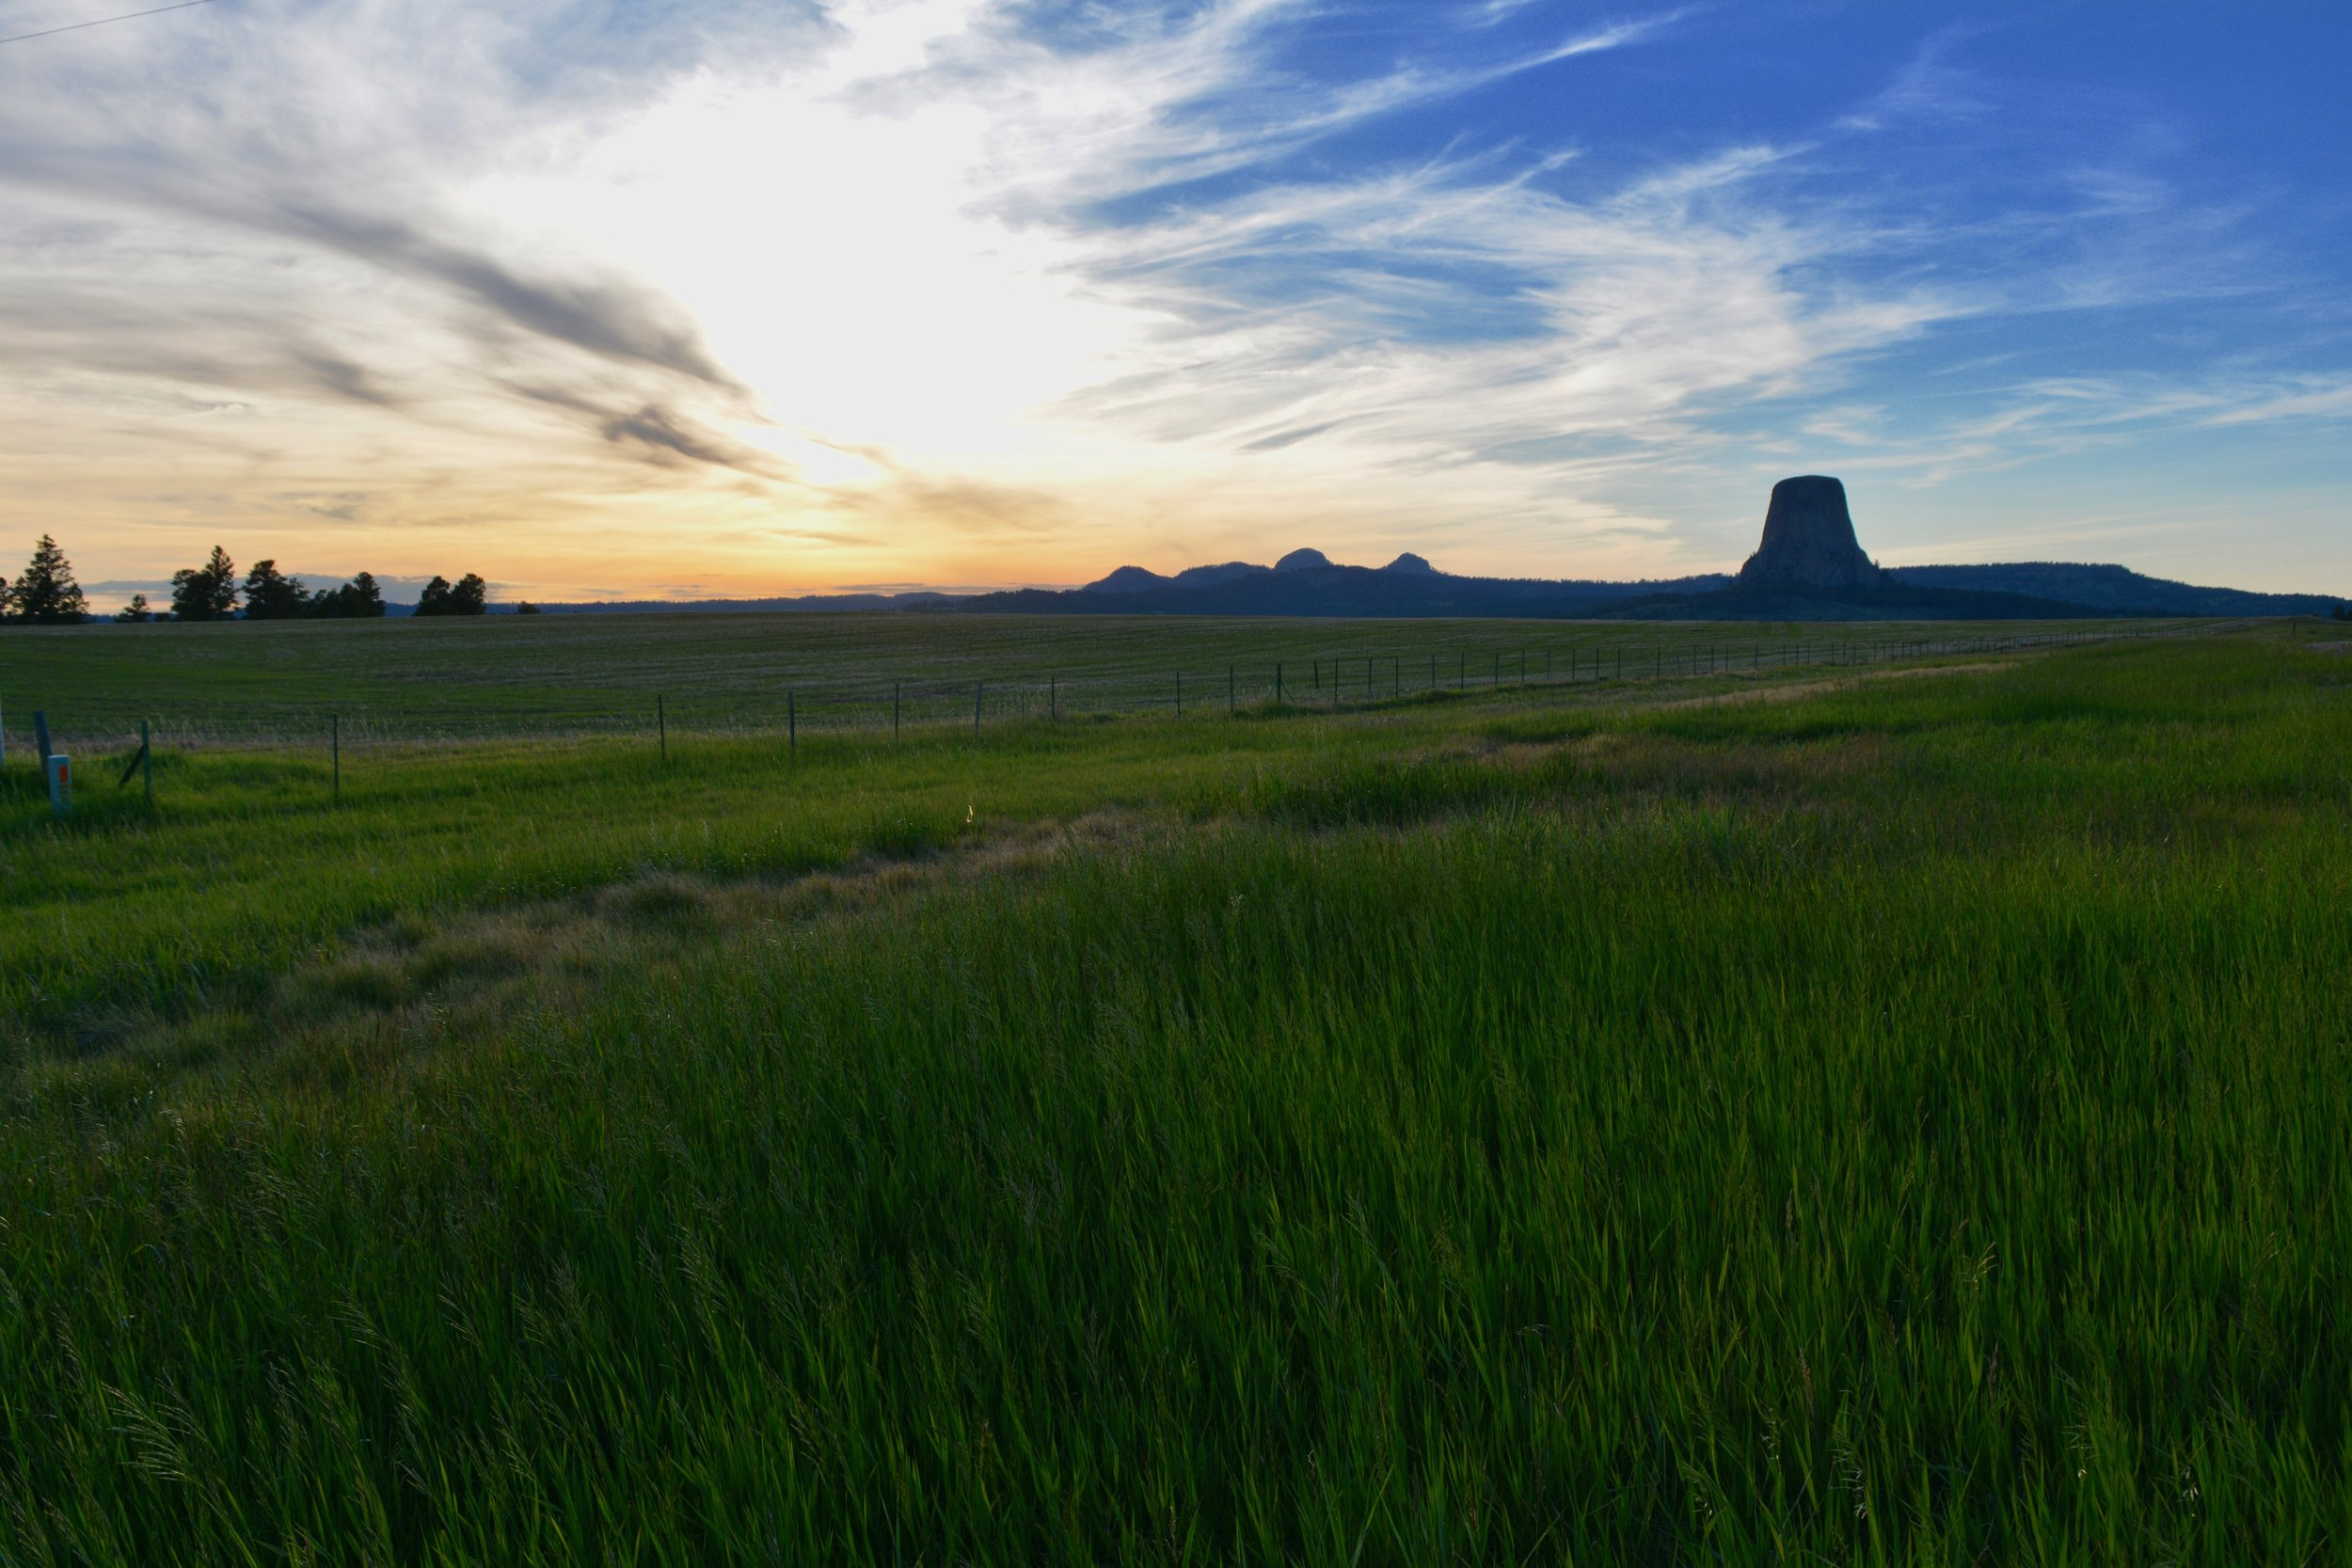 The sunset as I left Devils Tower National Monument